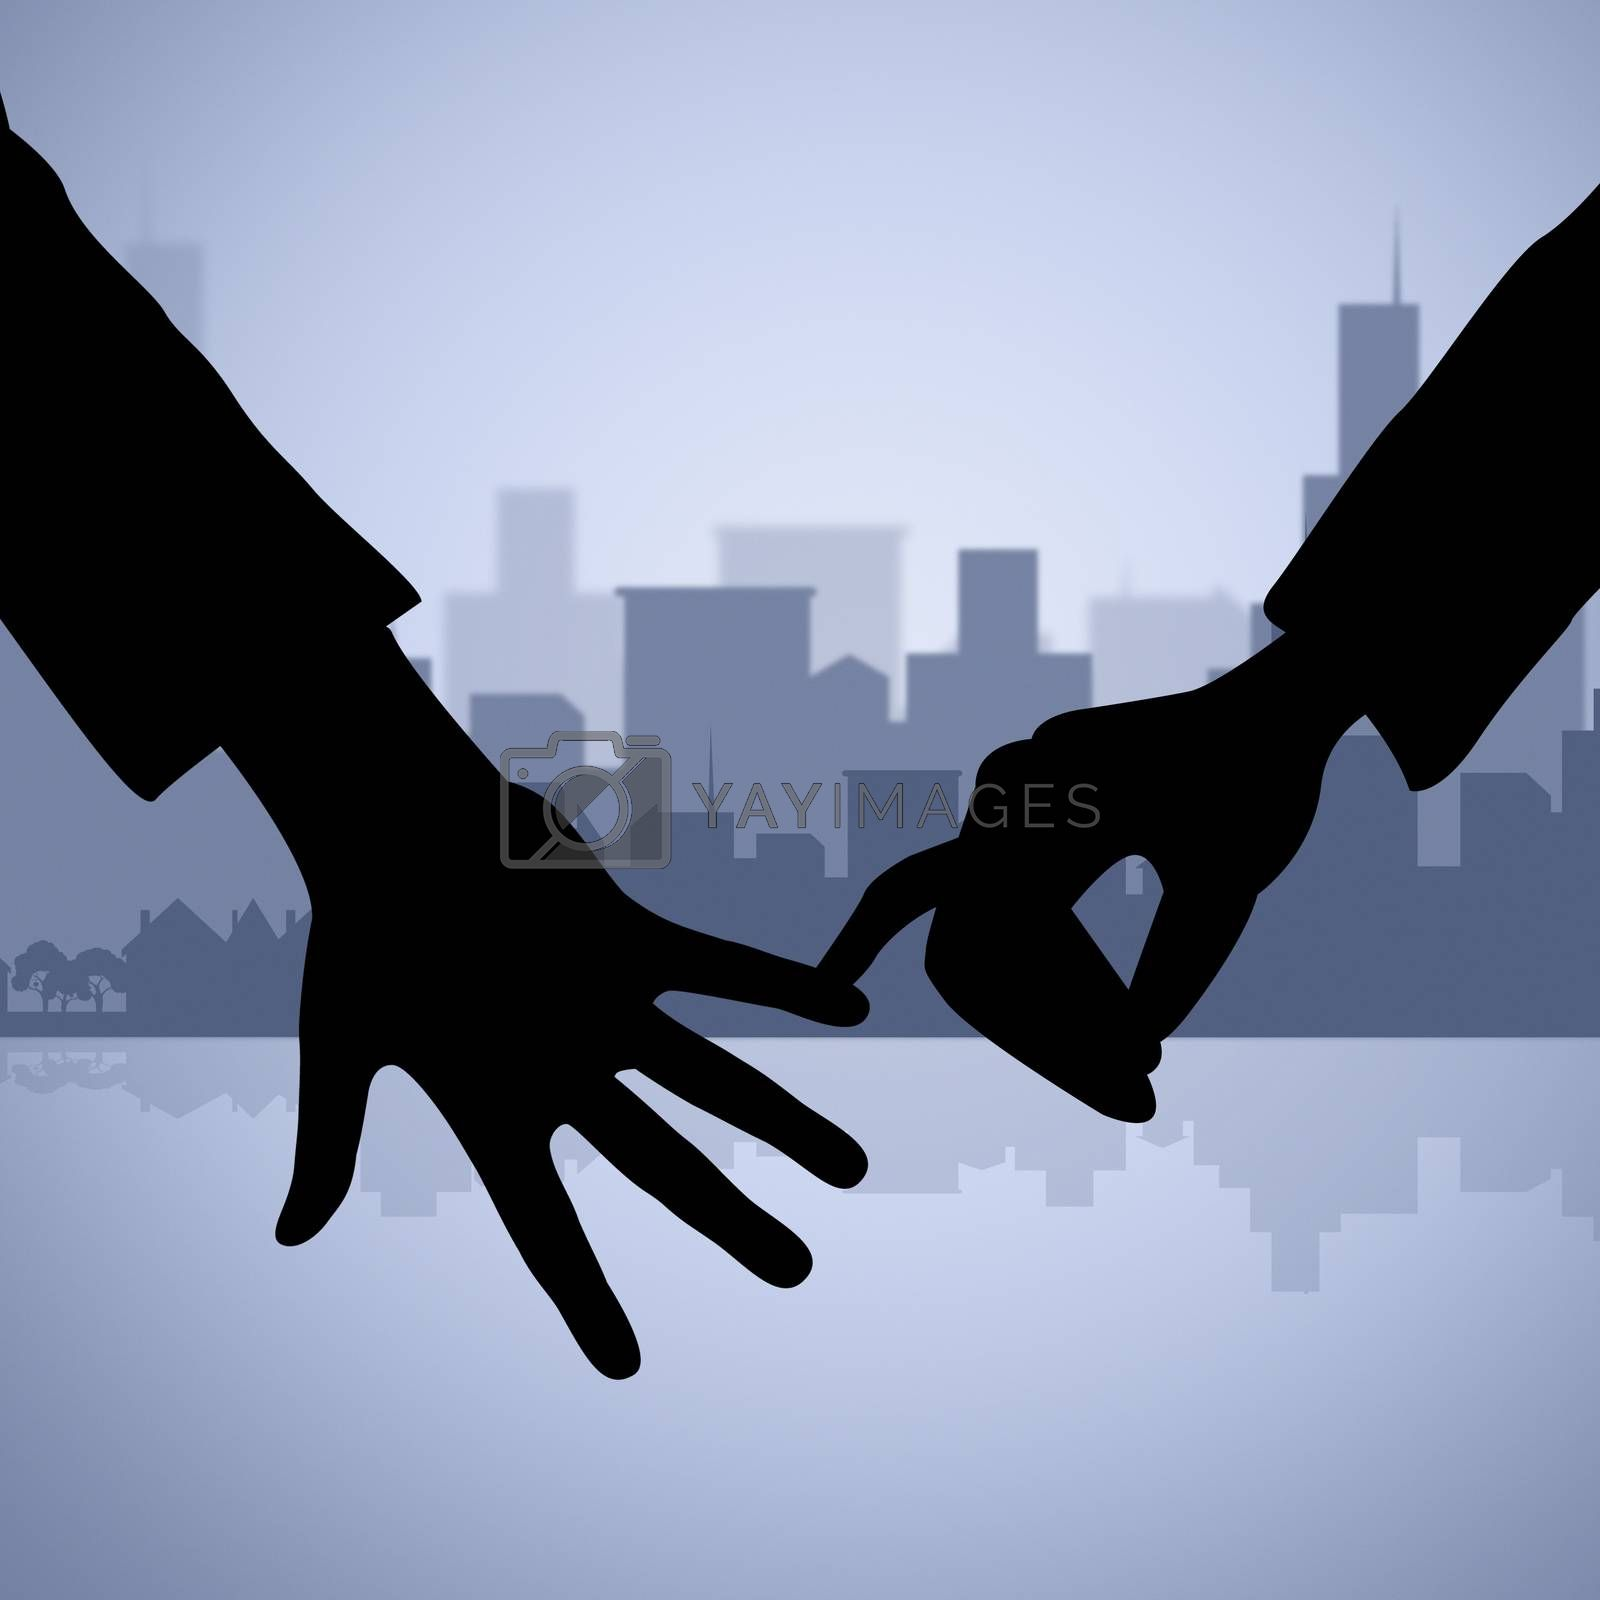 Holding Hands Represents Find Love And Affection by stuartmiles